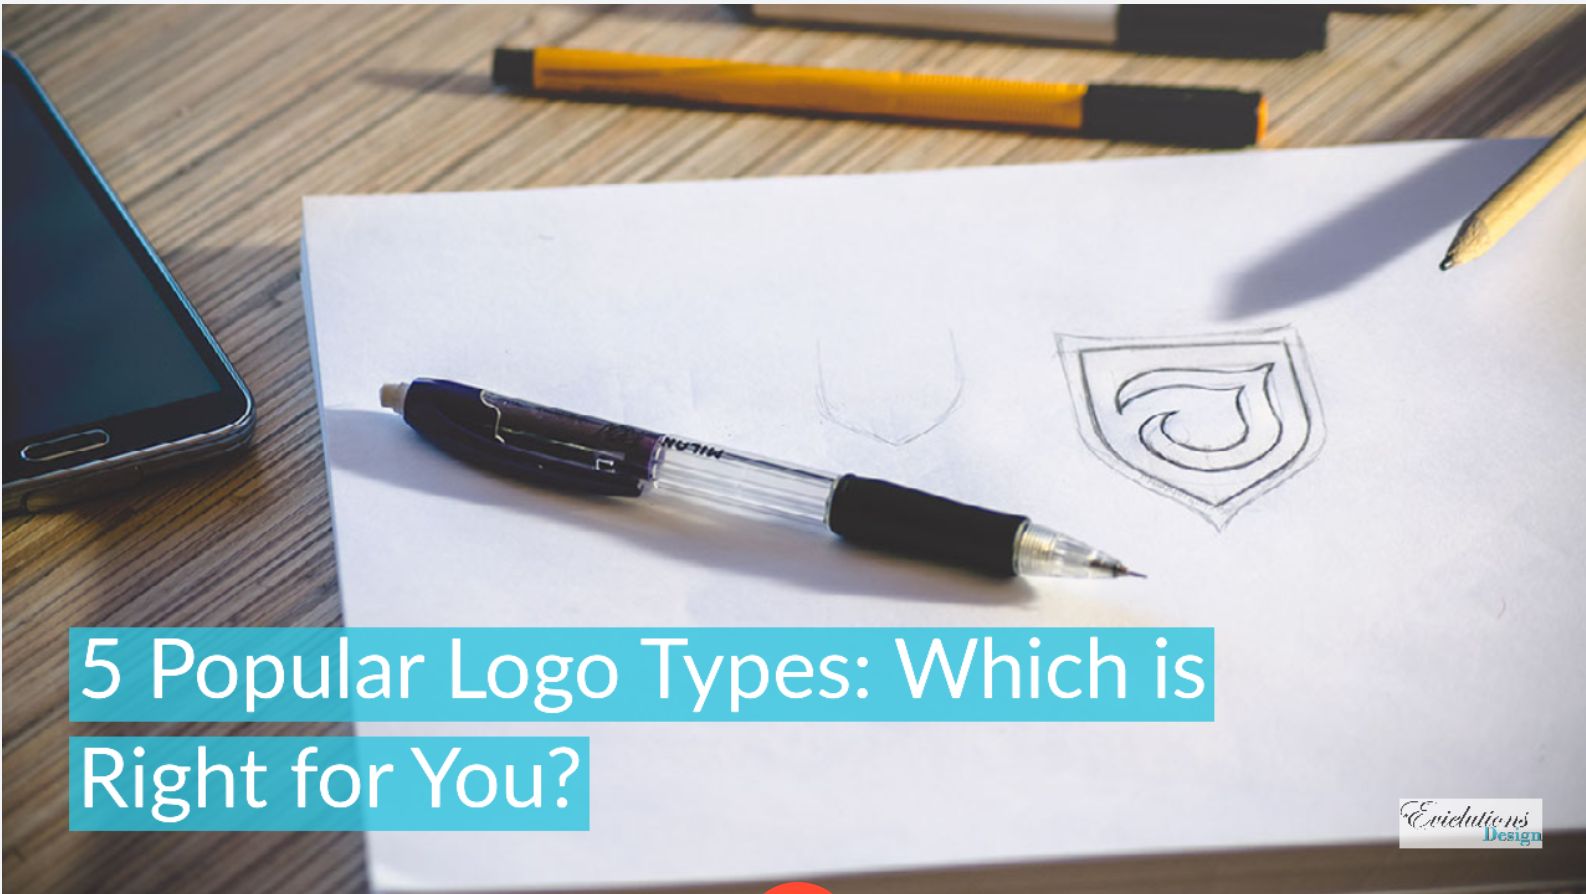 5 Popular Logo Types: Which is Right for You?